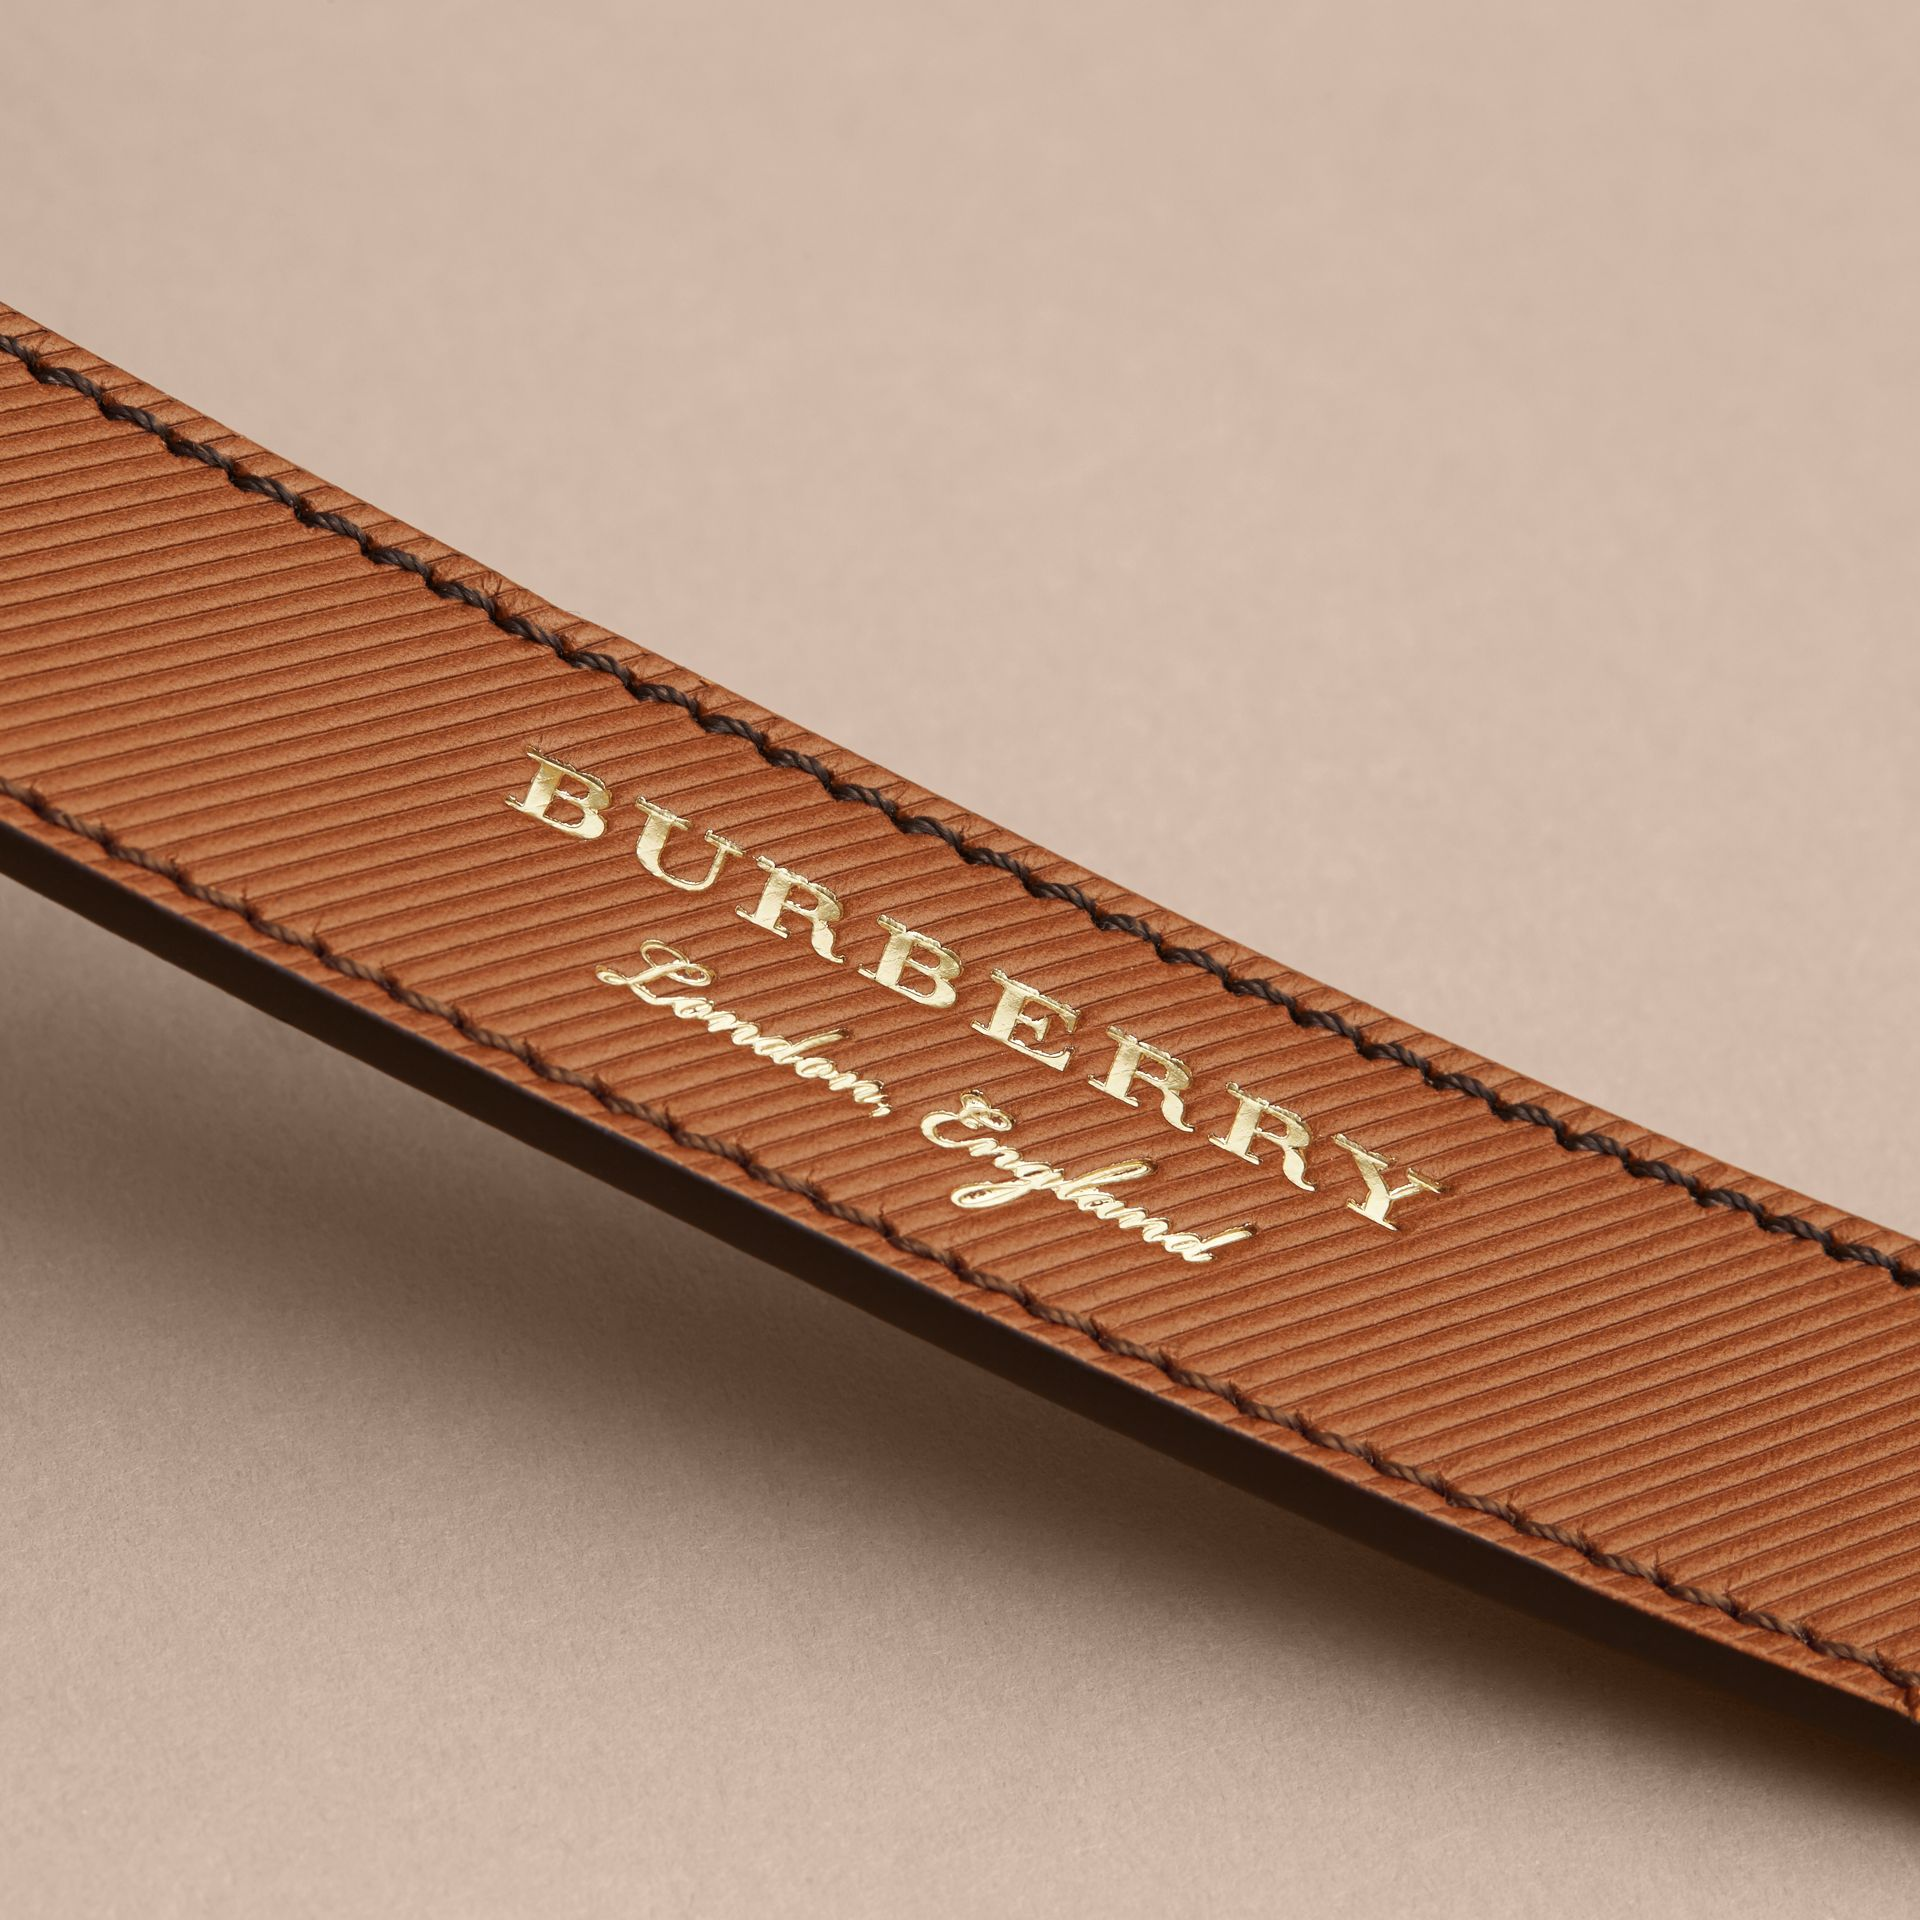 Trench Leather Belt in Tan - Men | Burberry United Kingdom - gallery image 2